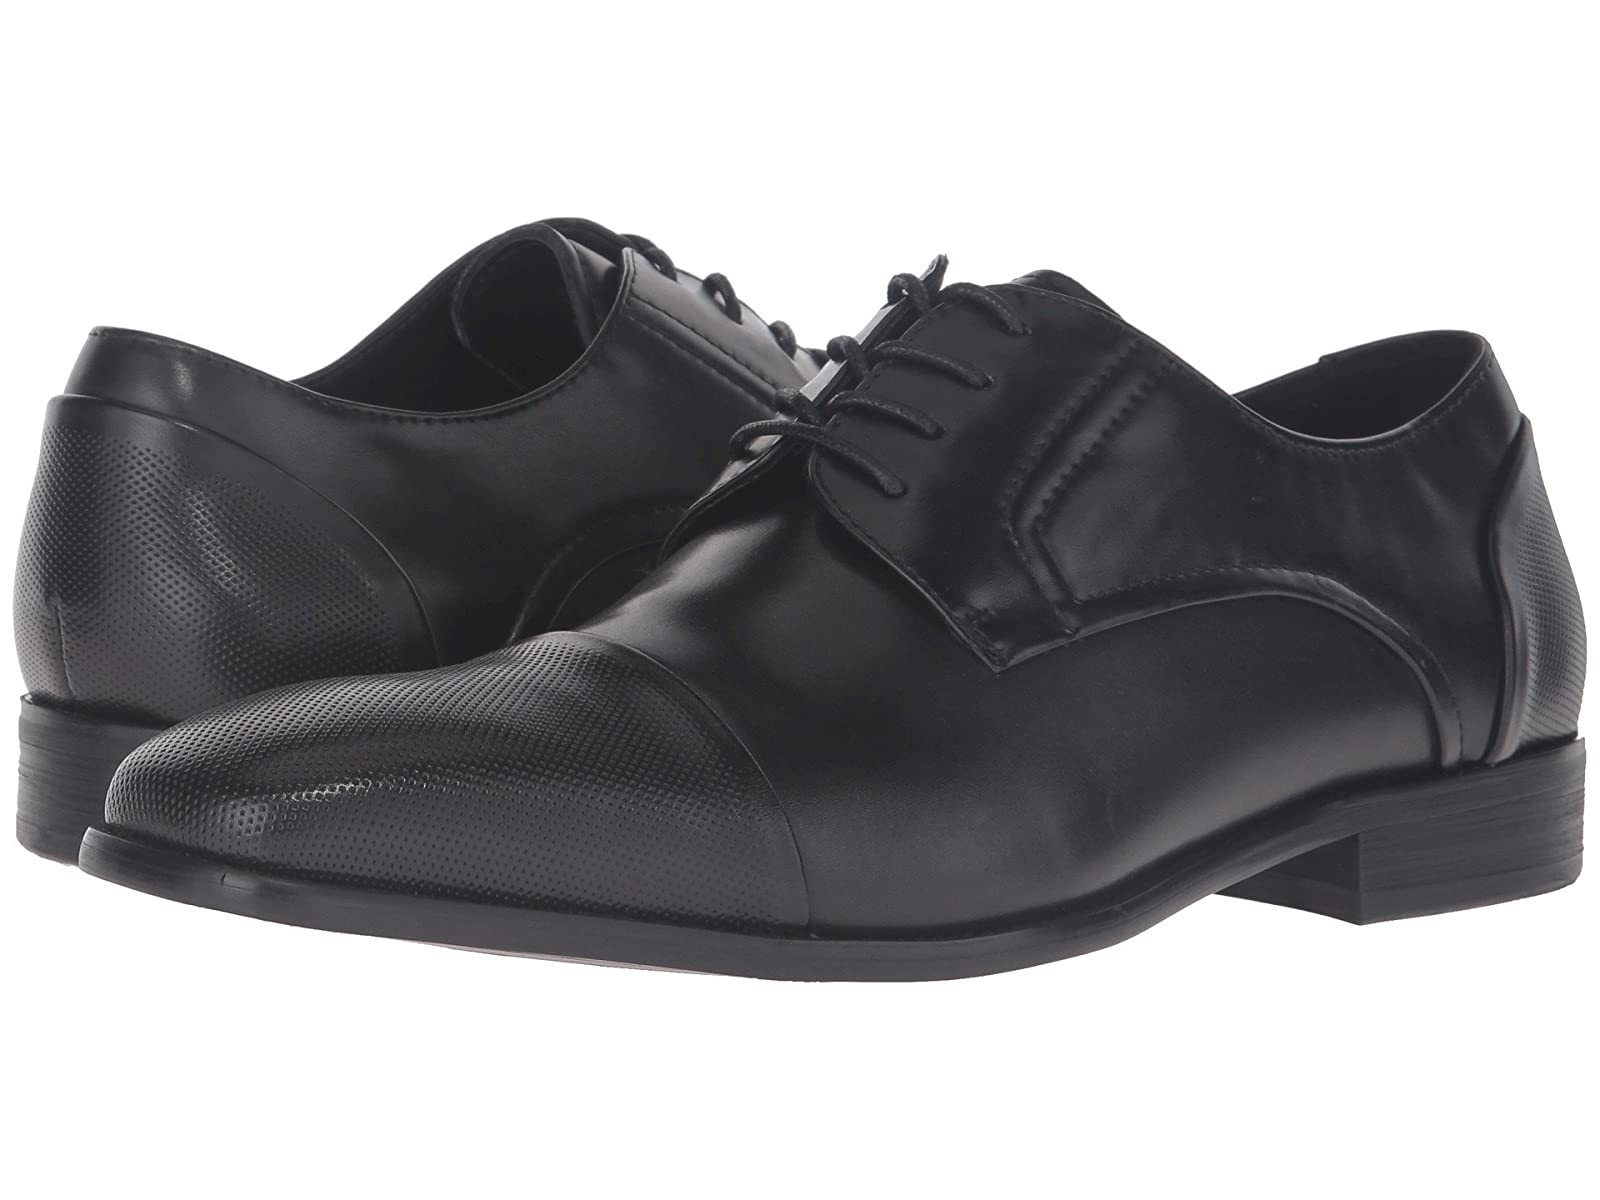 Kenneth Cole Reaction Sling N ArrowCheap and distinctive eye-catching shoes